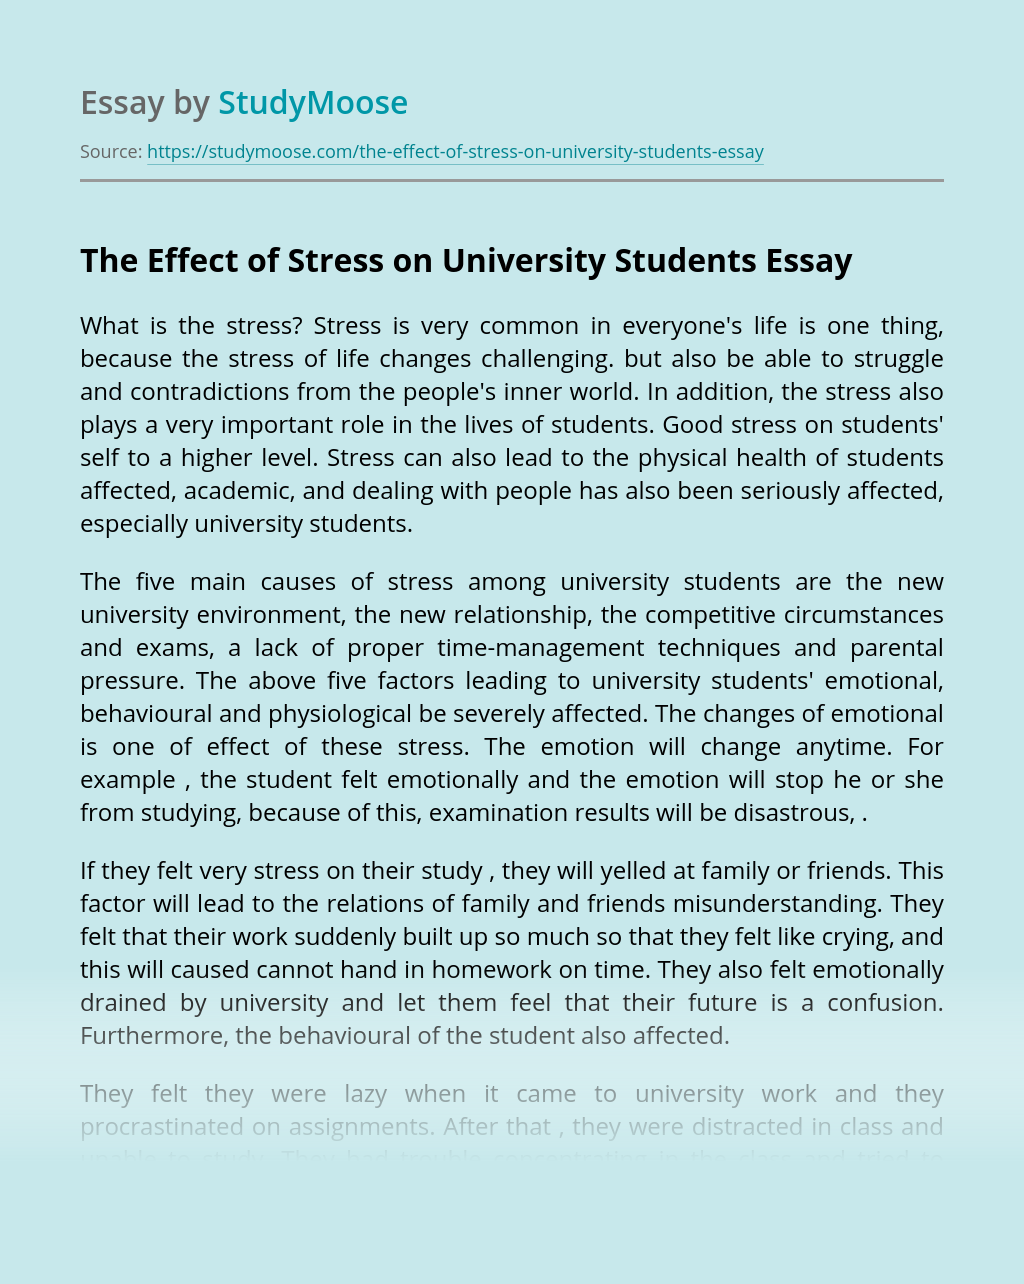 The Effect of Stress on University Students